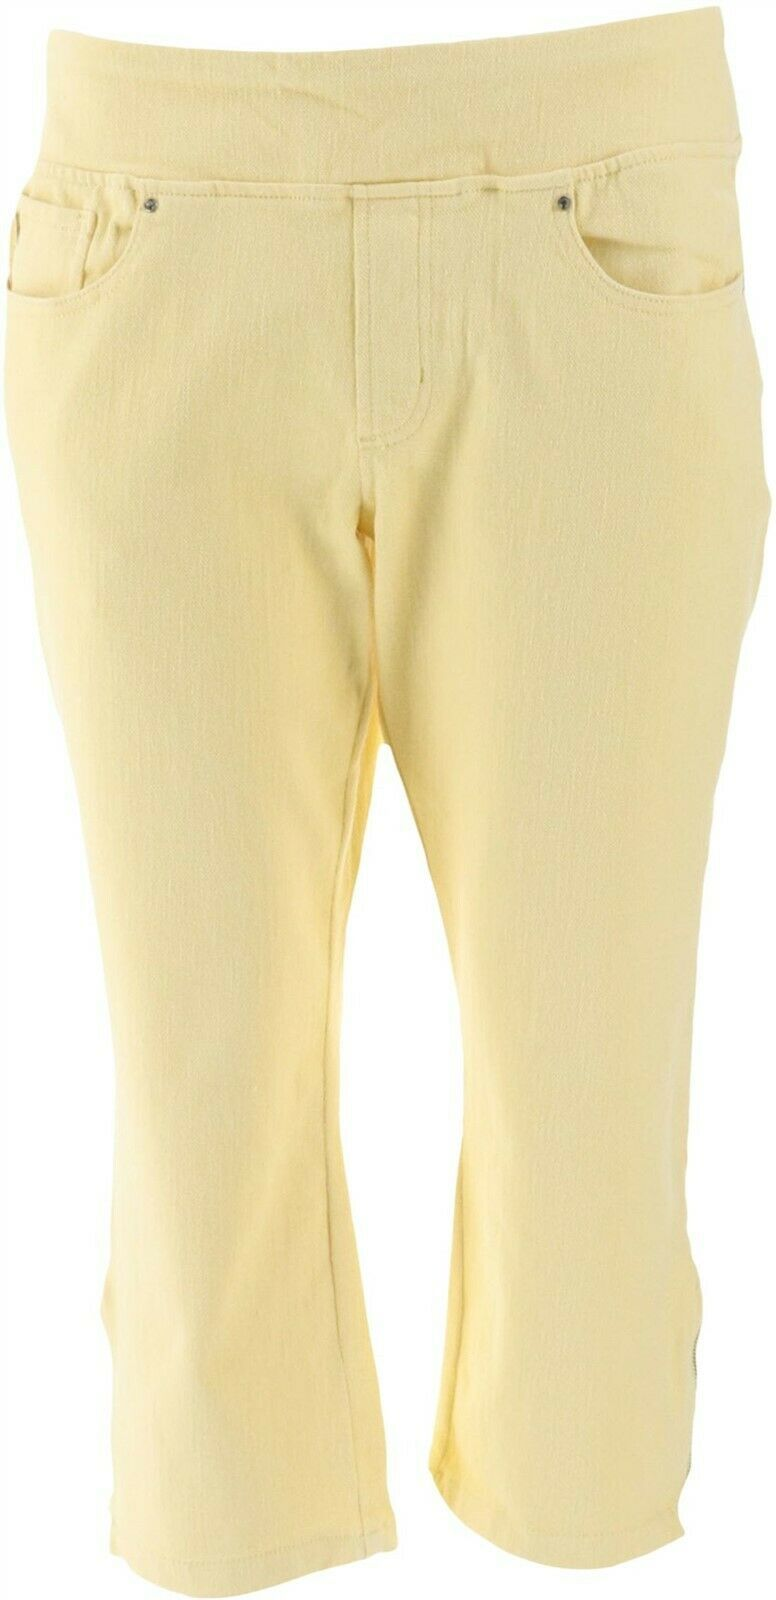 Primary image for Belle Kim Gravel Flexibelle Cropped Jeans Petite Buttercup 10P NEW A301516